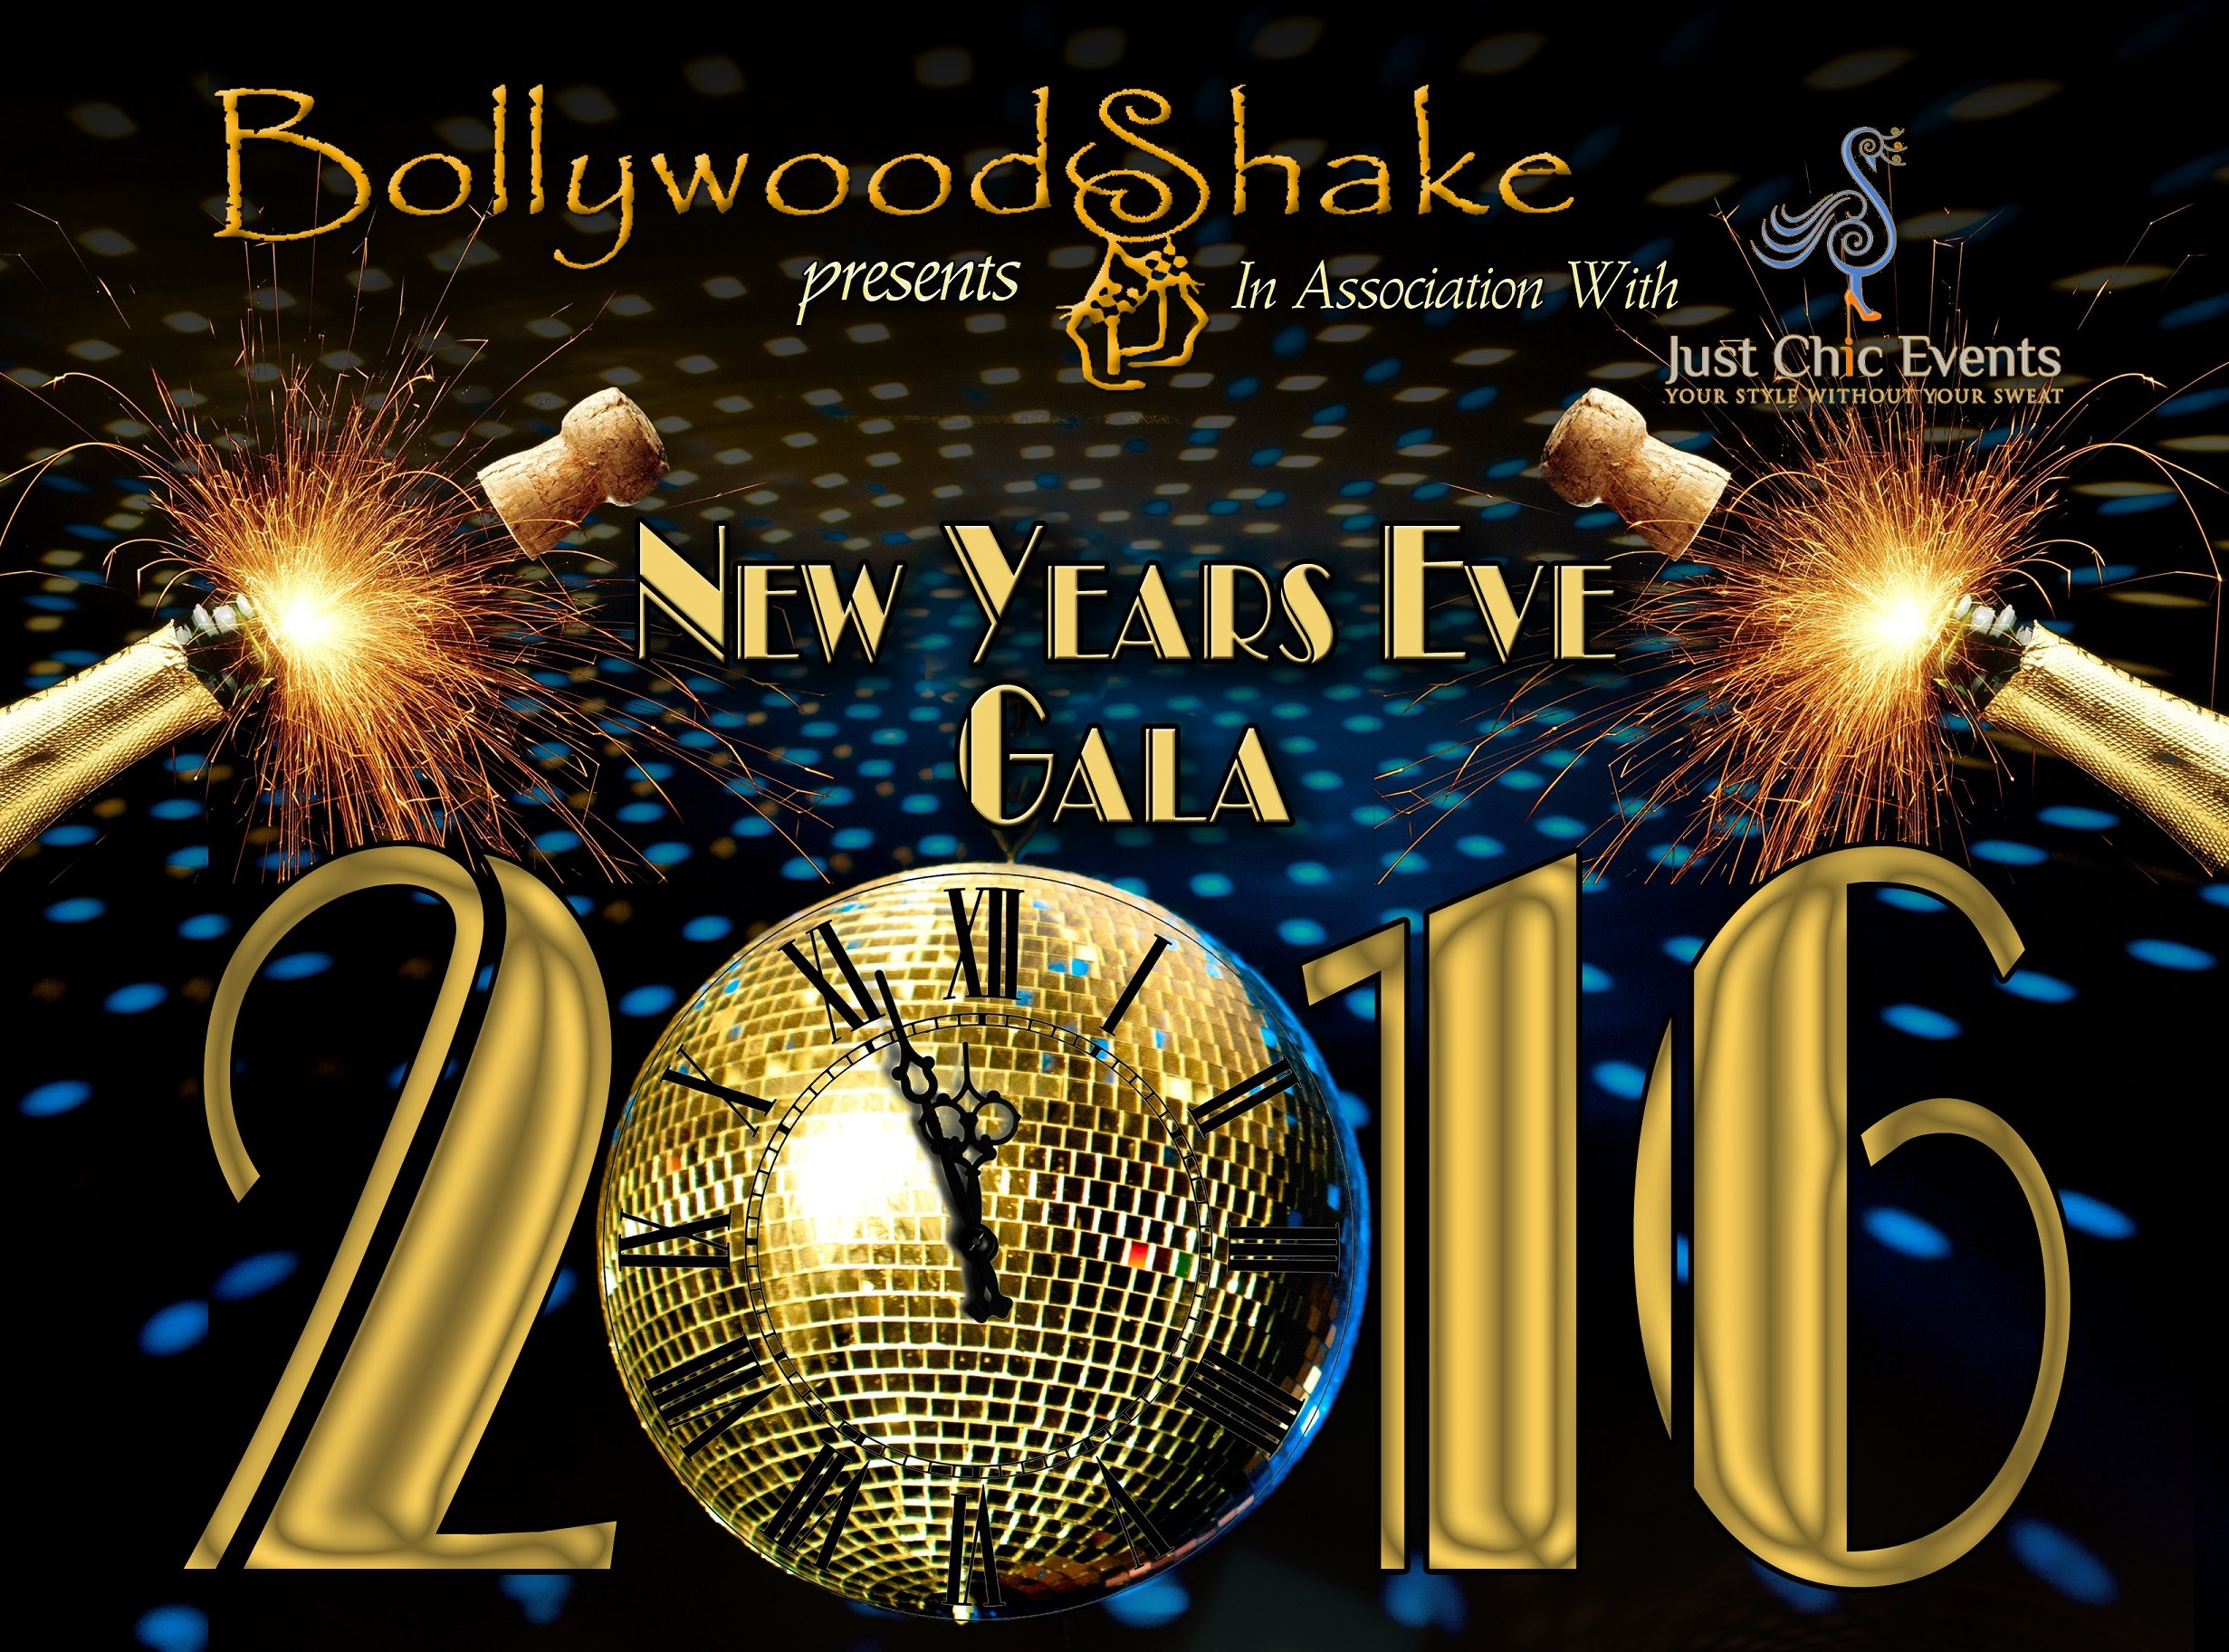 Bollywood Shaka New Years Eve Gala 2017 in Safari Texas Ranch     Bollywood Shake New Year s Eve Gala 2016